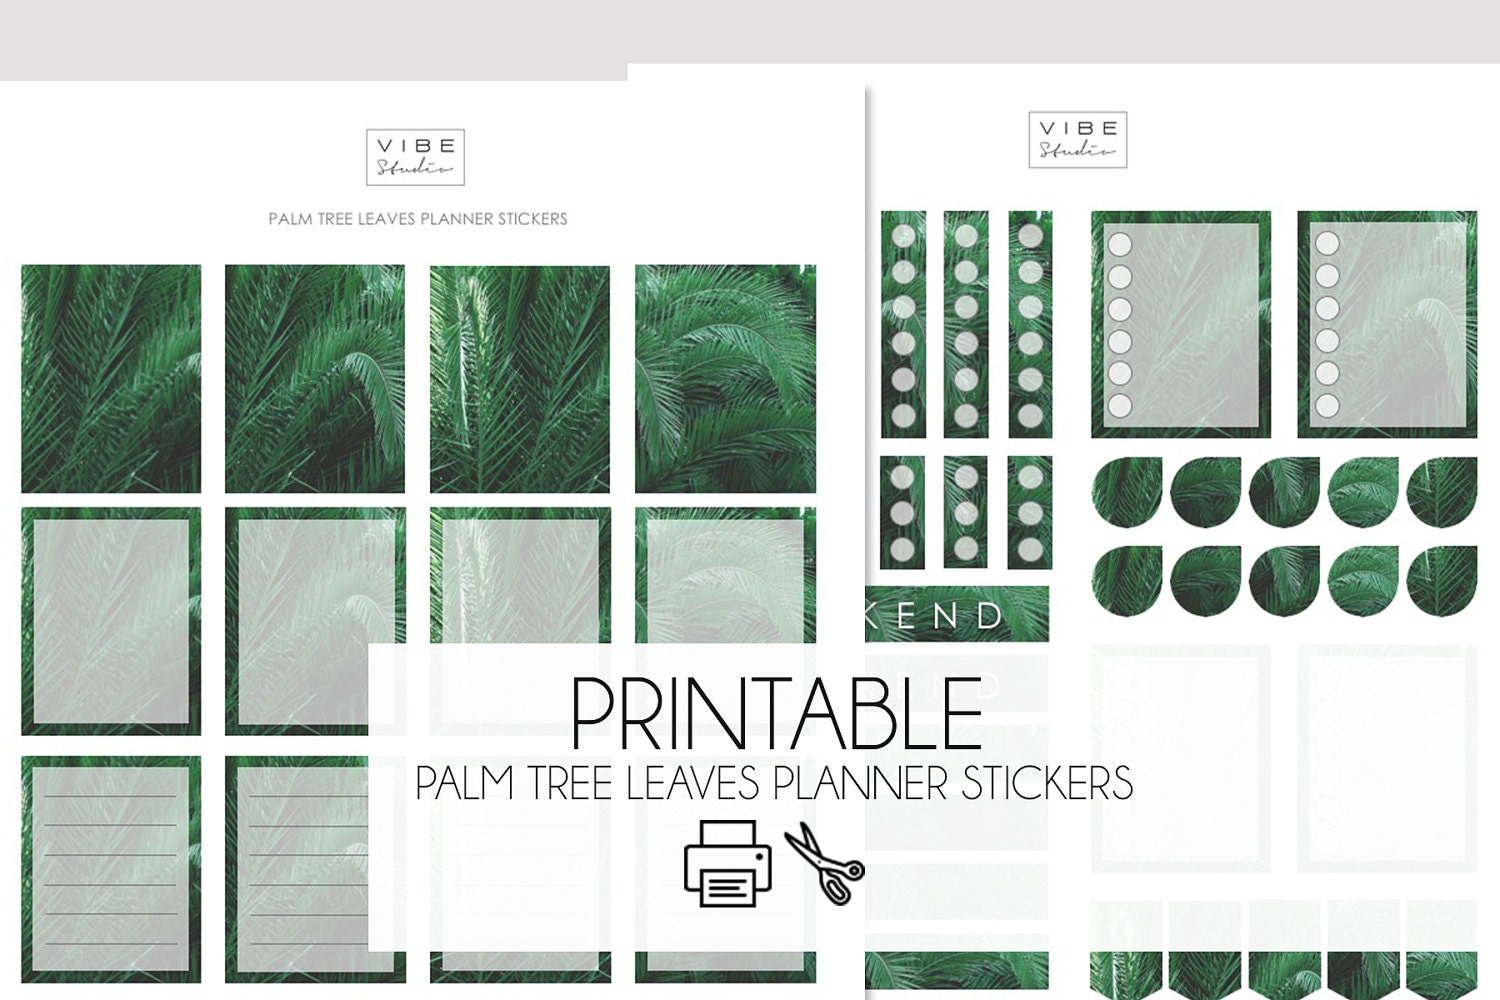 palm tree planner stickers printable planner stickers palm